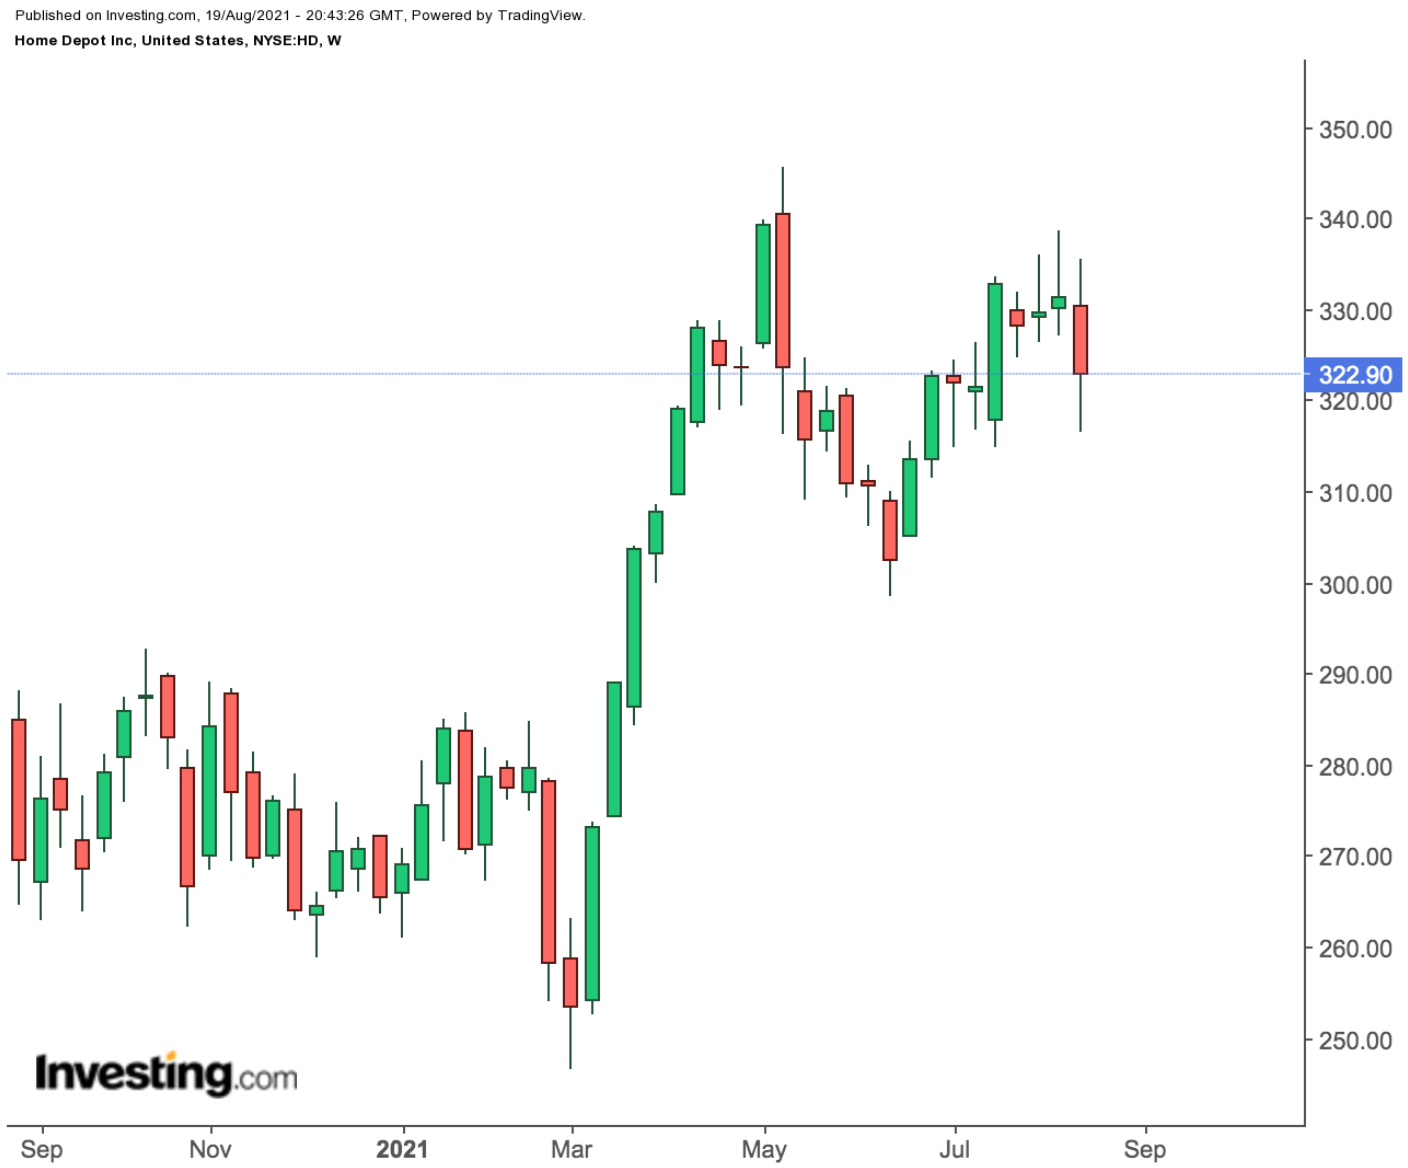 Home Depot Weekly Chart.